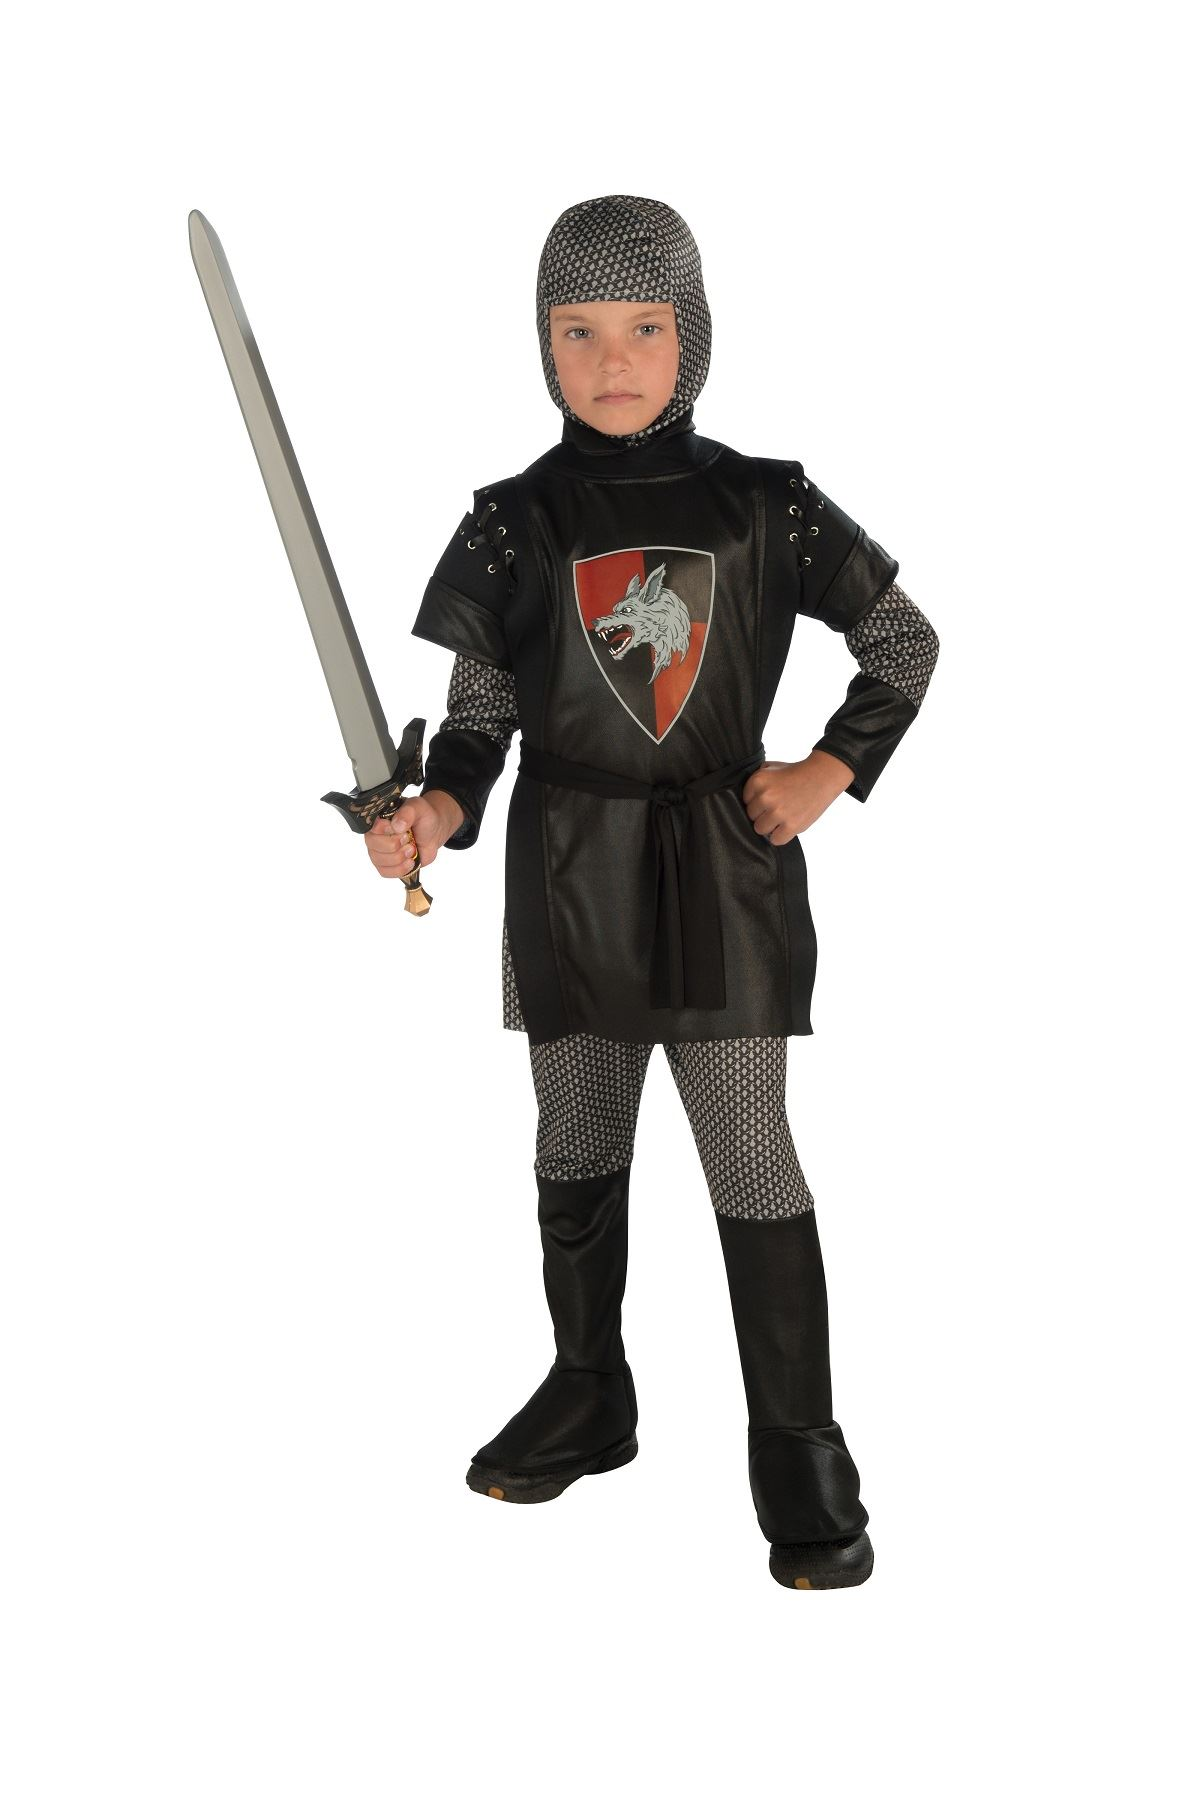 Kids Knight Boys Medieval Deluxe Costume 26 99 The Costume Land